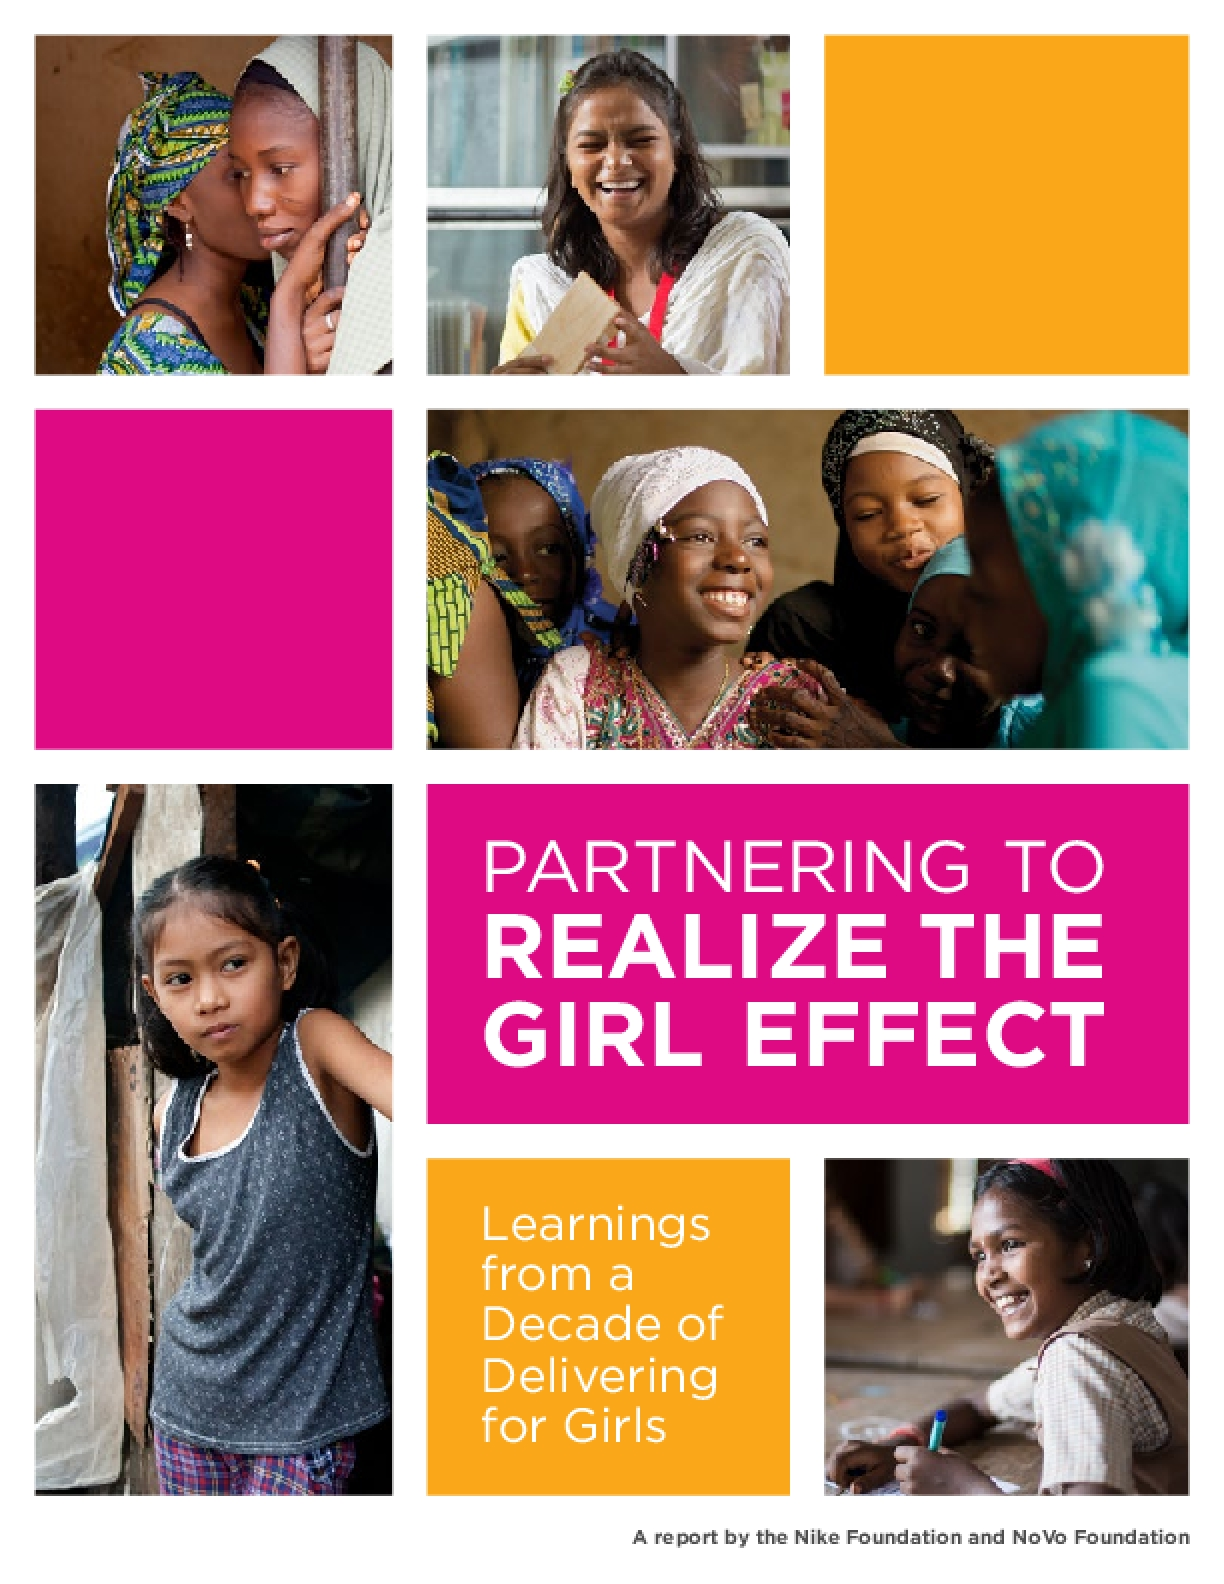 Partnering to Realize the Girl Effect: Learnings from a Decade of Delivering for Girls